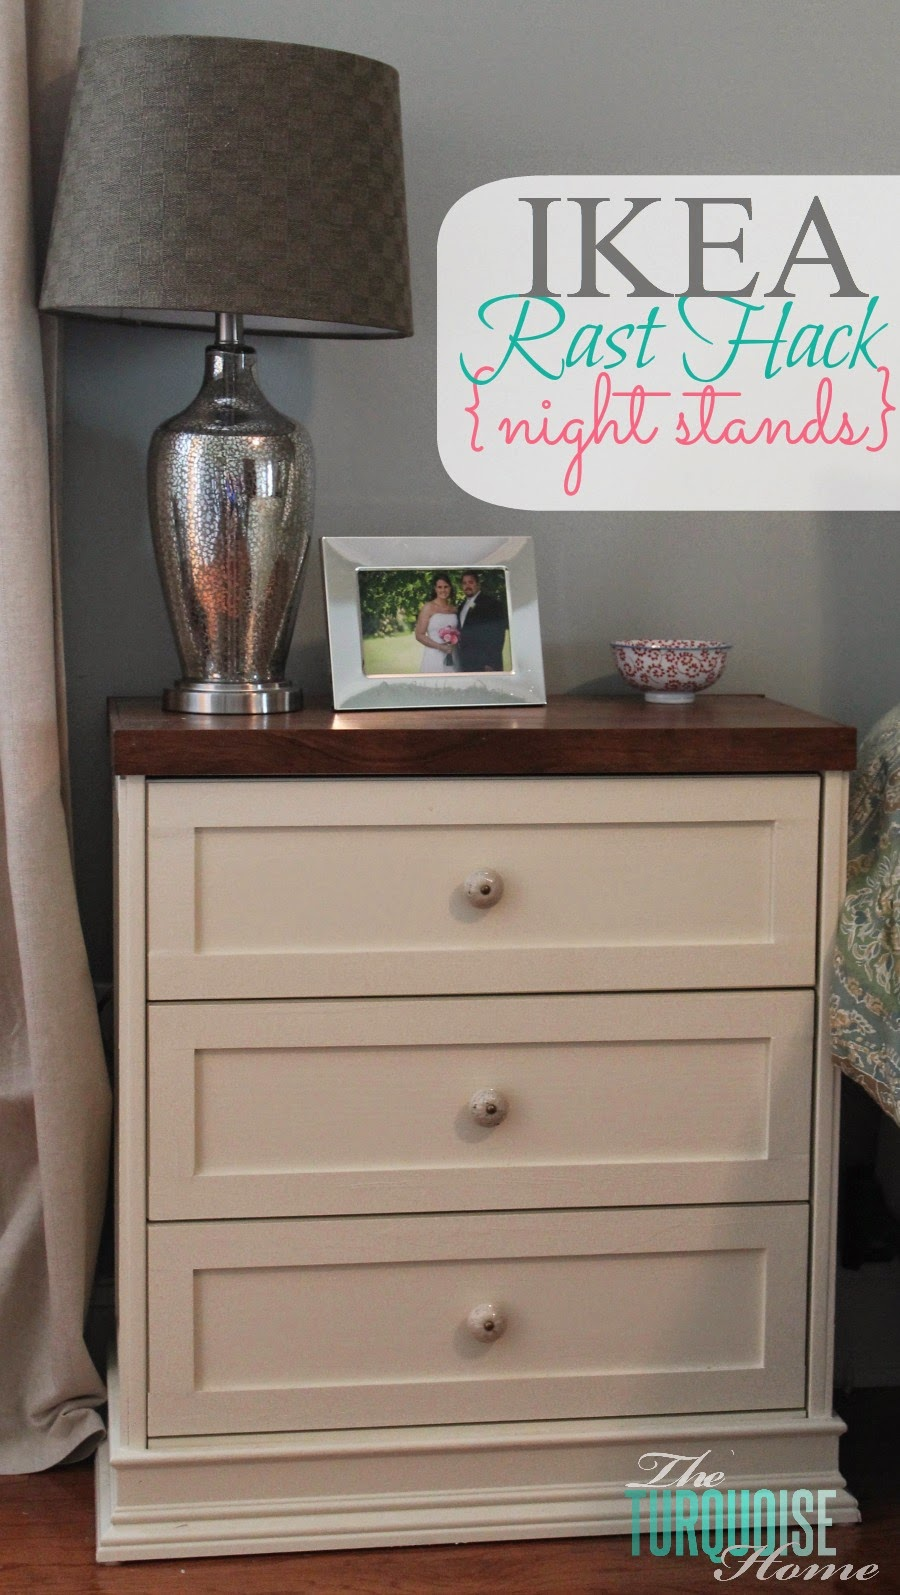 Ikea rast hack new nightstands ikea hackers ikea hackers for Bedroom dressers ikea